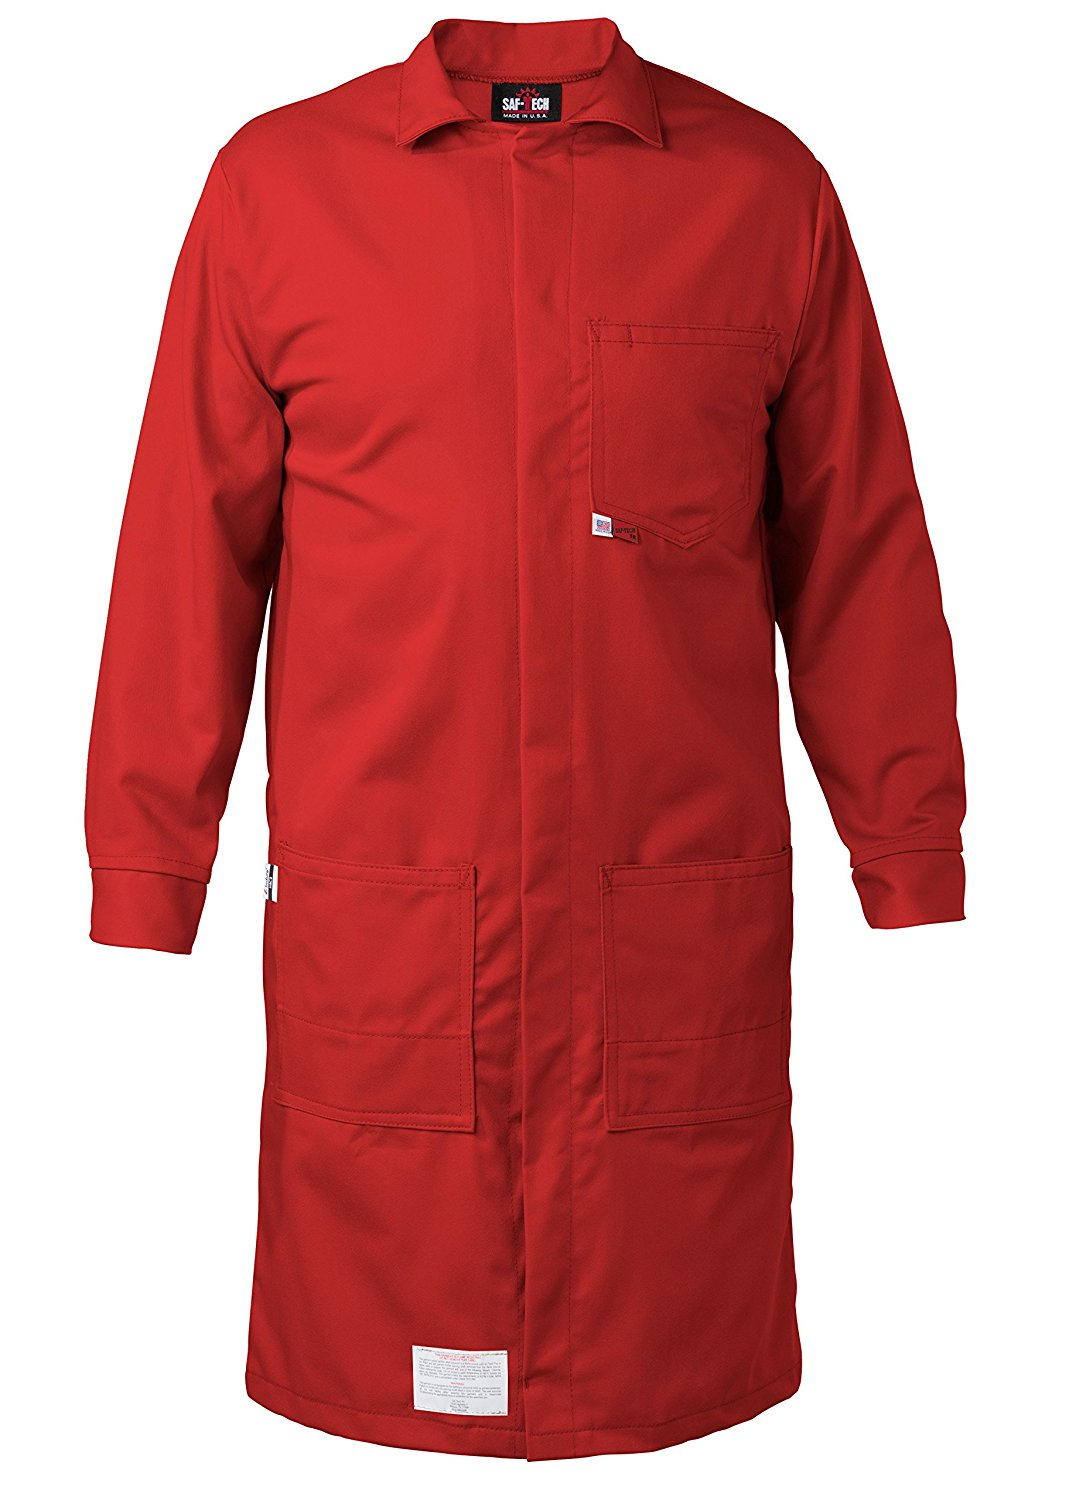 RED - 6X - FR LAB COAT - 6oz. NOMEX III3 Flame Resistant Fabric - Lab or Classroom Ready - HRC 1 - APTV= 5.7 cal/m2 - MADE IN THE U.S.A.